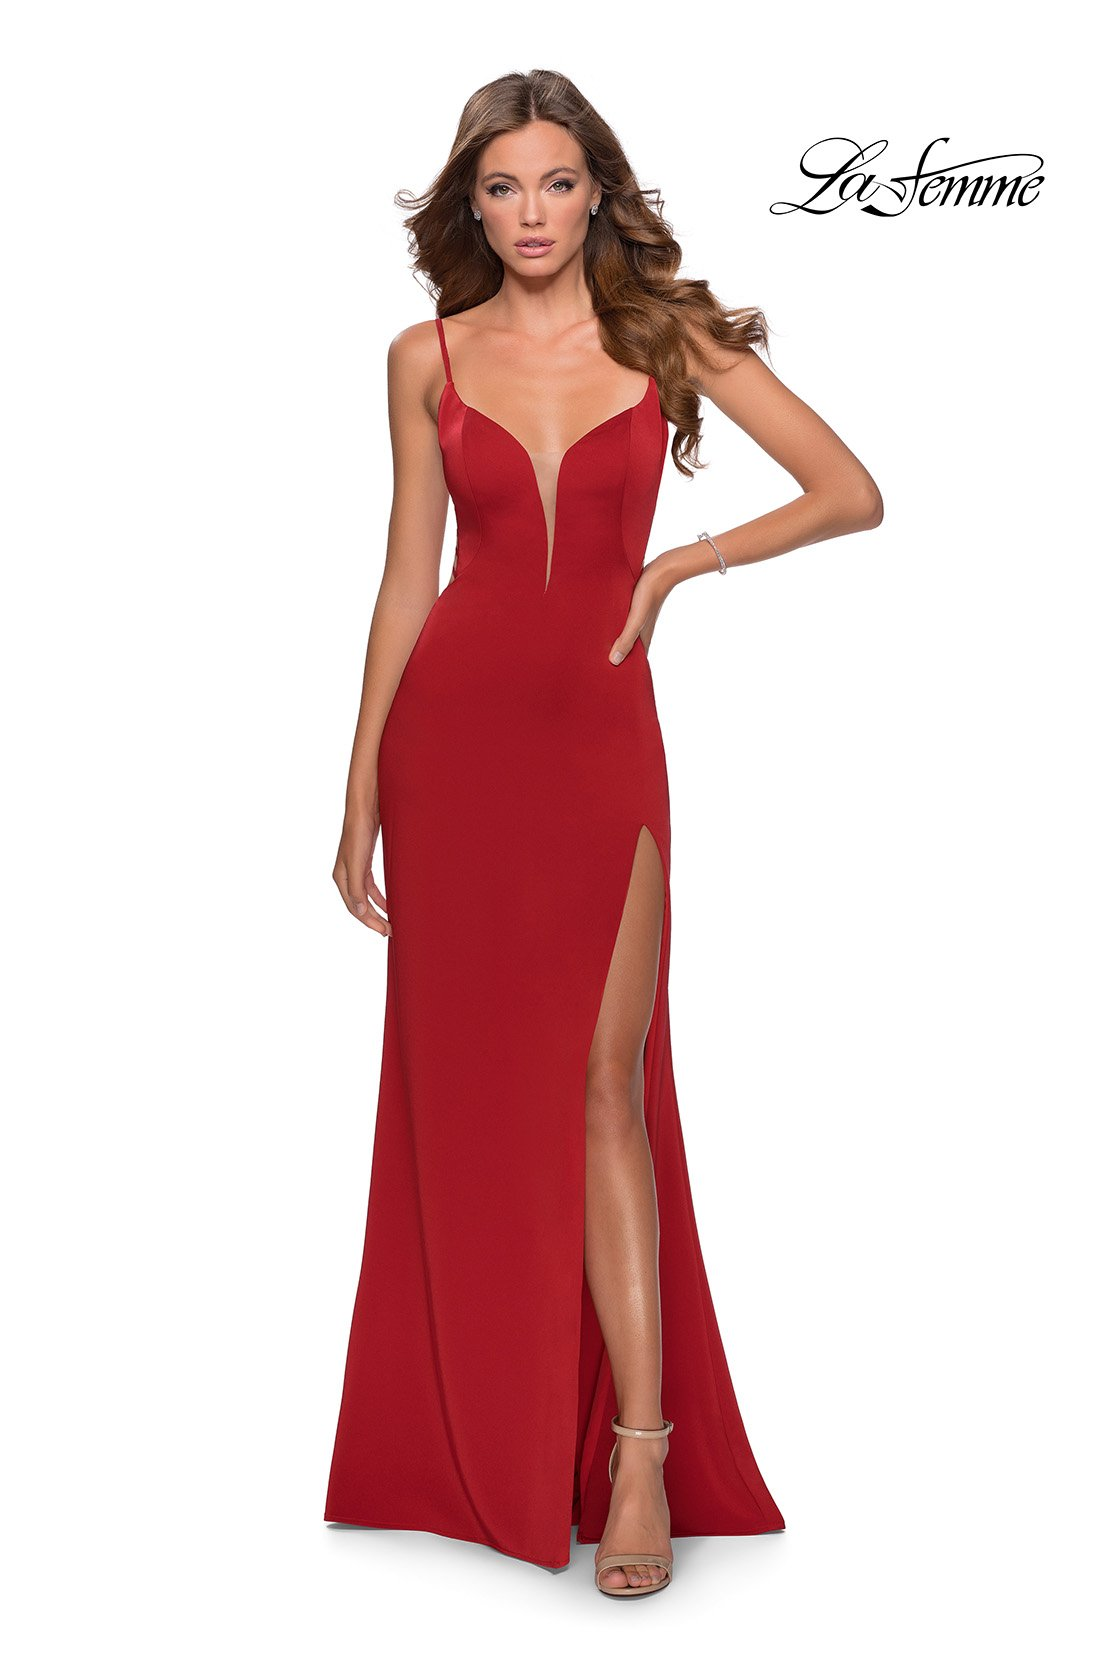 La Femme 28461 prom dress images.  La Femme 28461 is available in these colors: Black, Red, Royal Blue, Royal Purple, White.